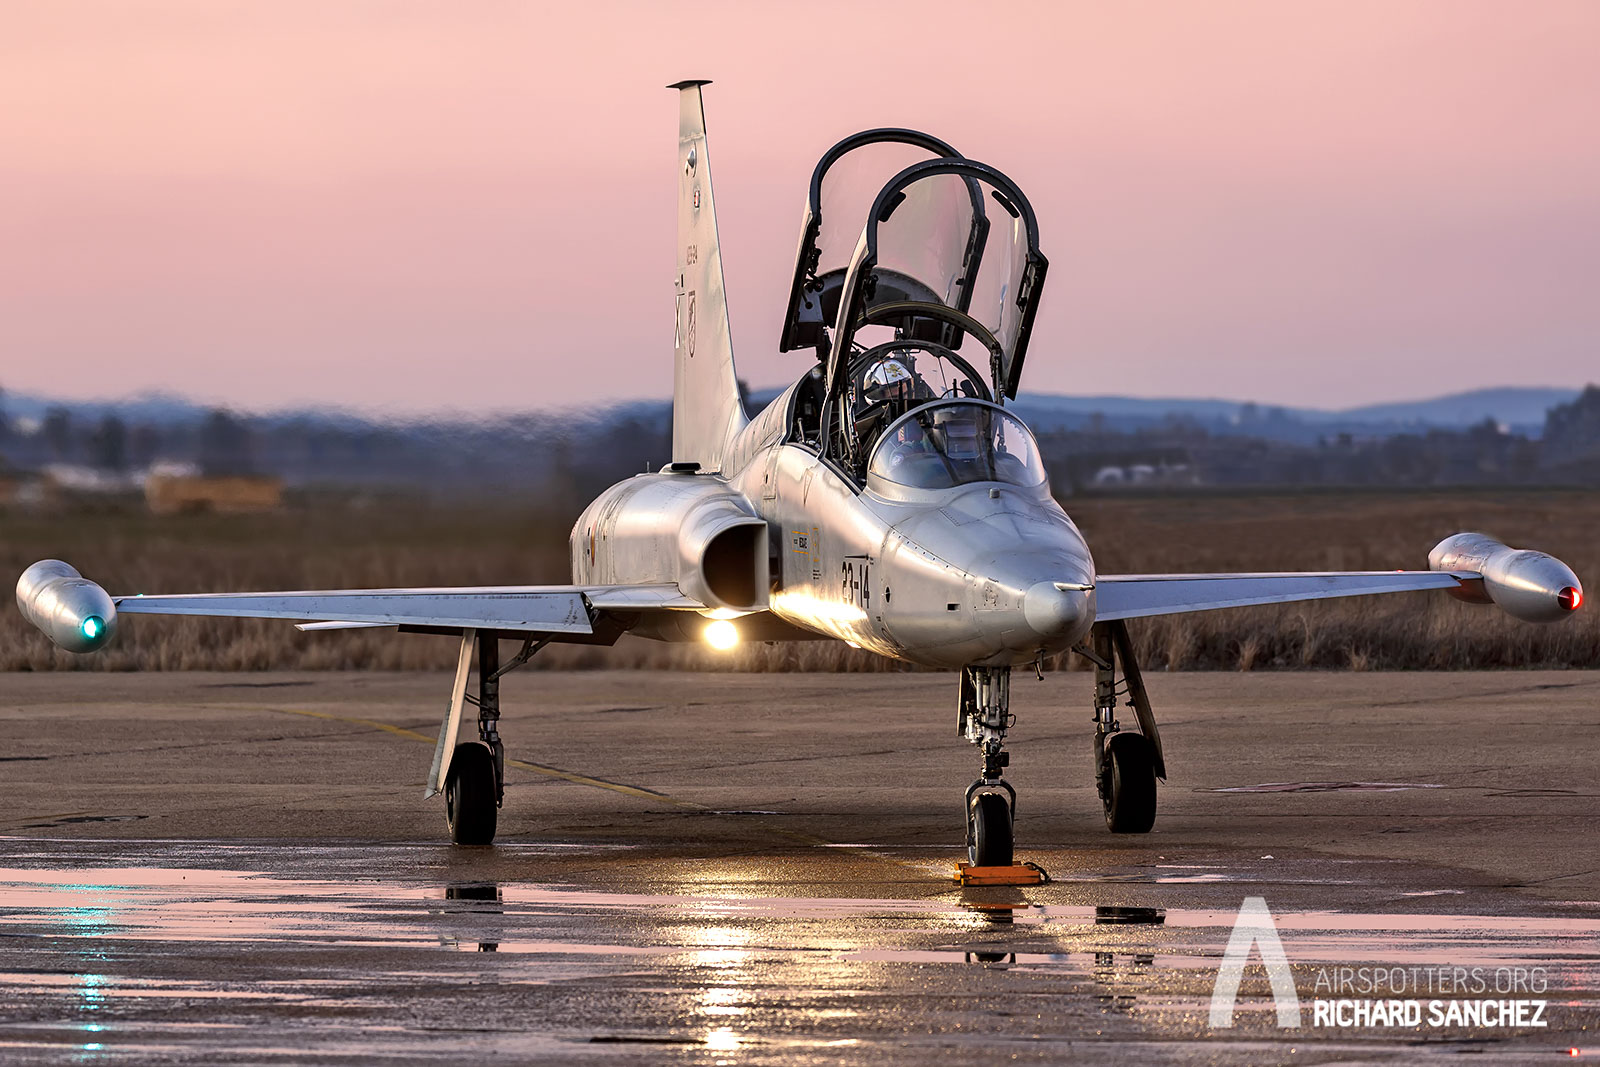 Airspotters. Ala 23. F-5